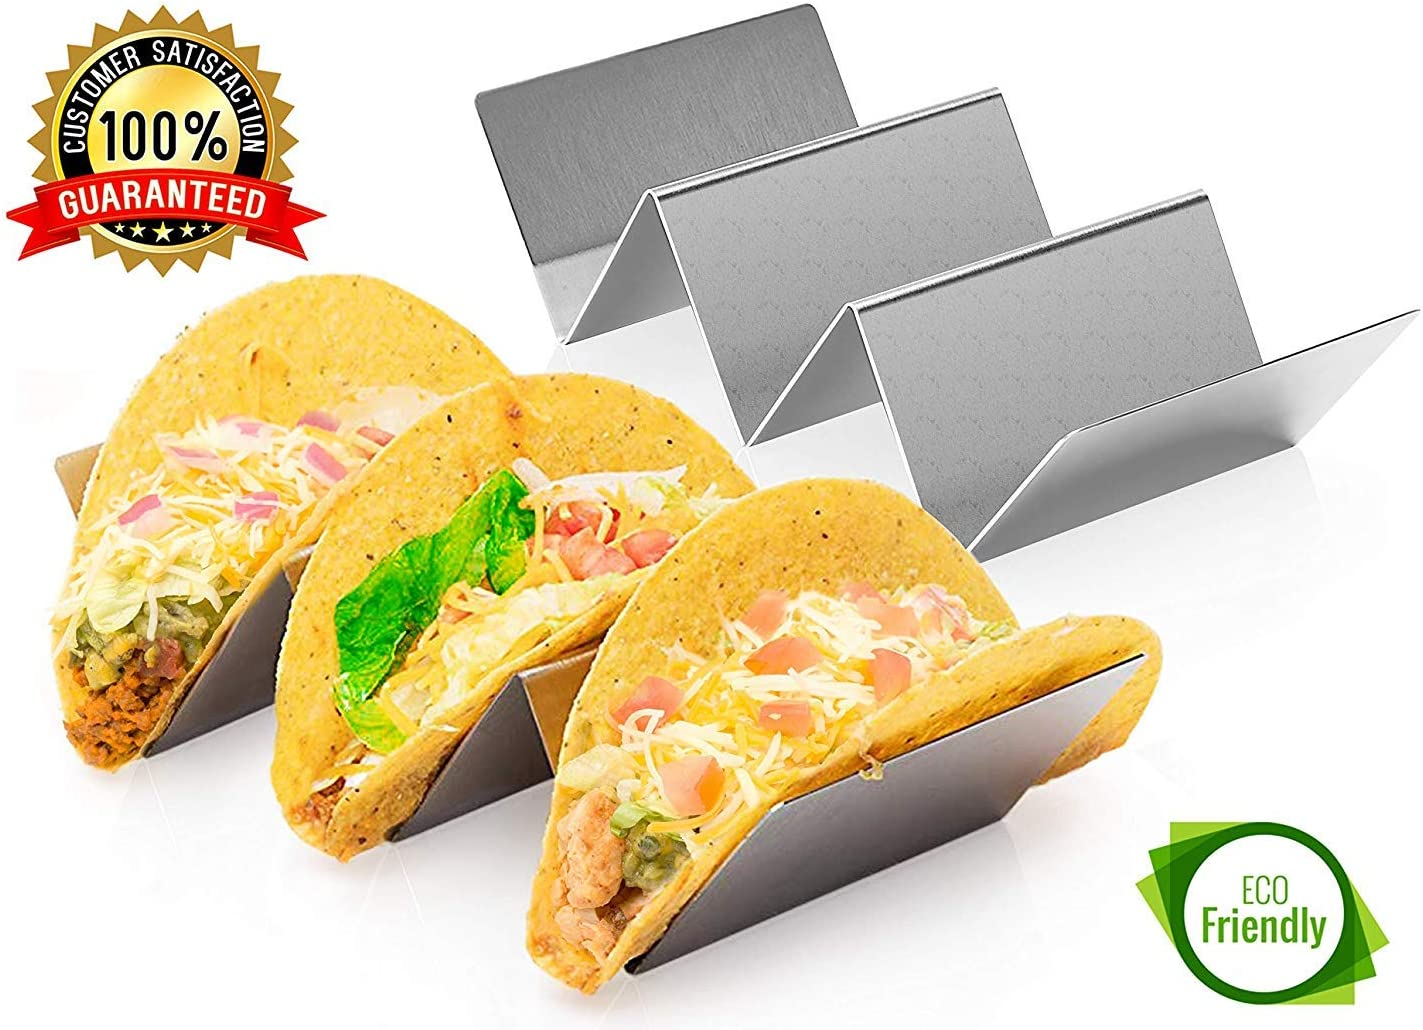 Taco Holder Stand Set - 2 Pack Stainless Steel Taco Rack Tray Taco Party Serving Trays Safe for Oven, Dishwasher and Grill, Hold Up to 3 Tacos